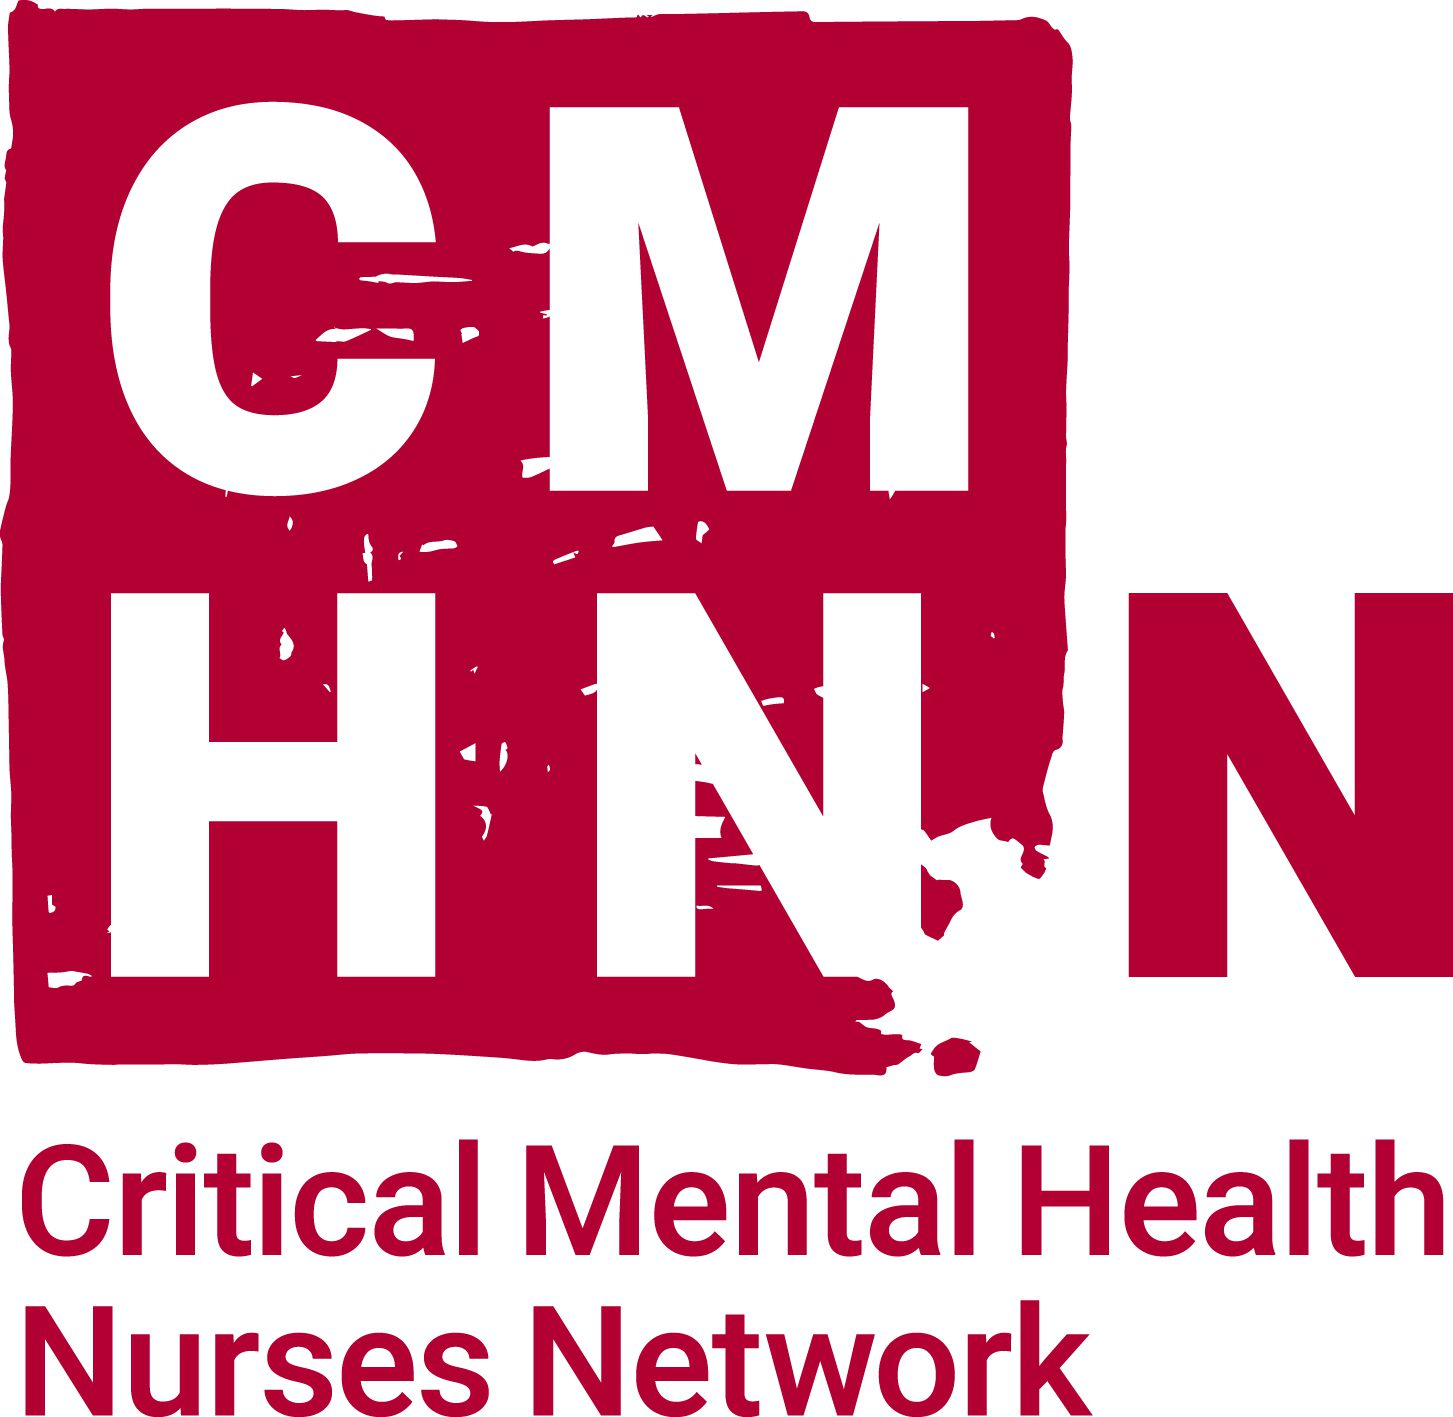 Critical Mental Health Nurses' Network